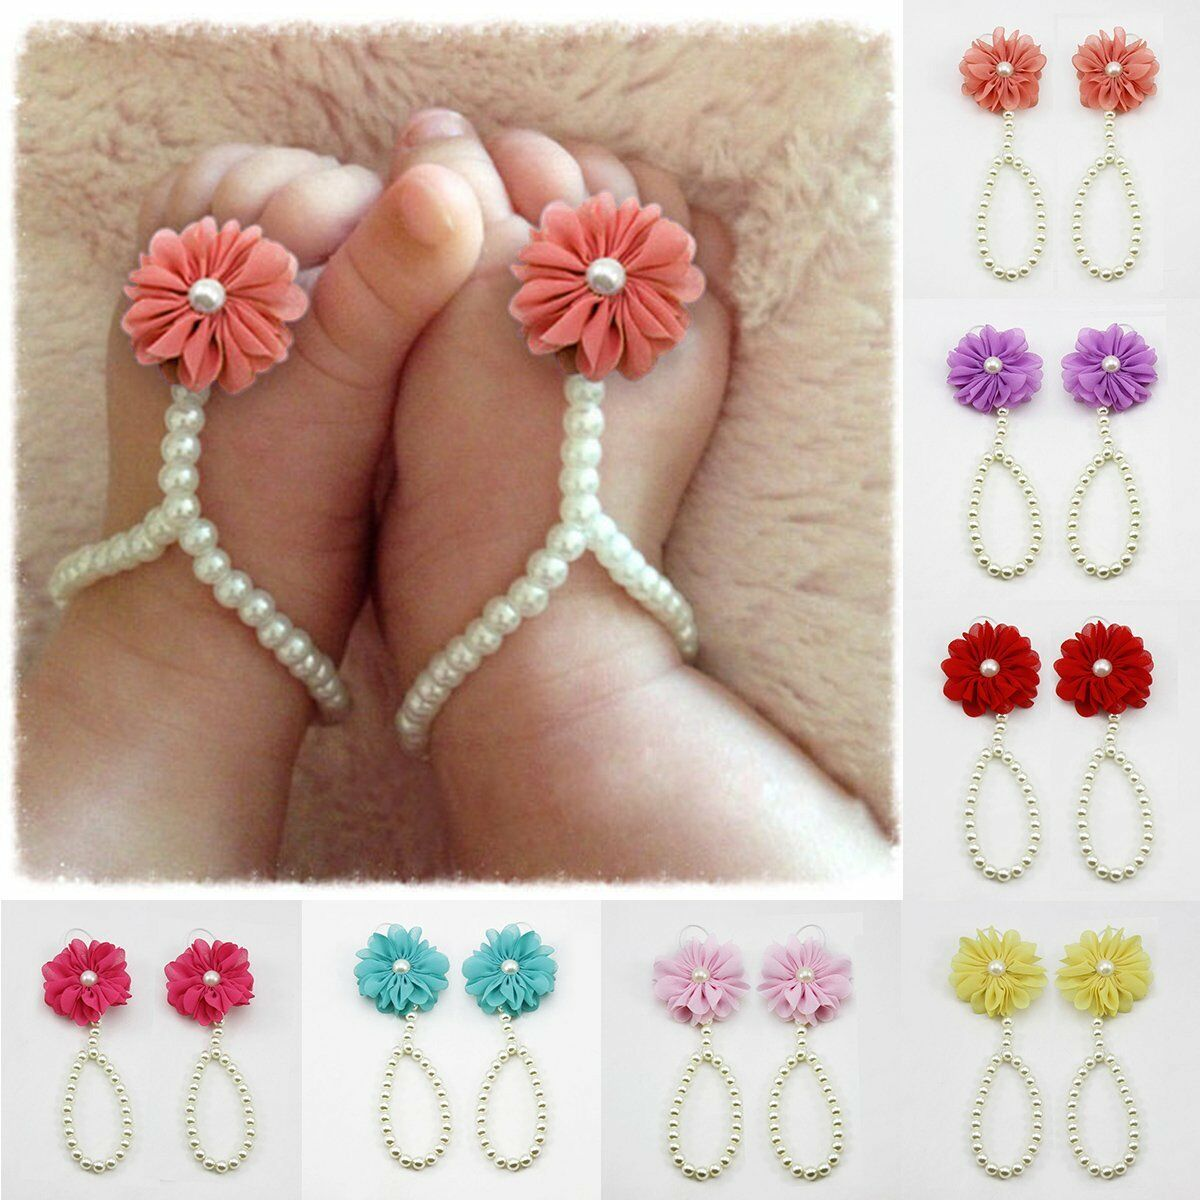 Summer Infant Sole Crib Barefoot Ring Flower Pearl Shoes Sandals For Kids Girl a